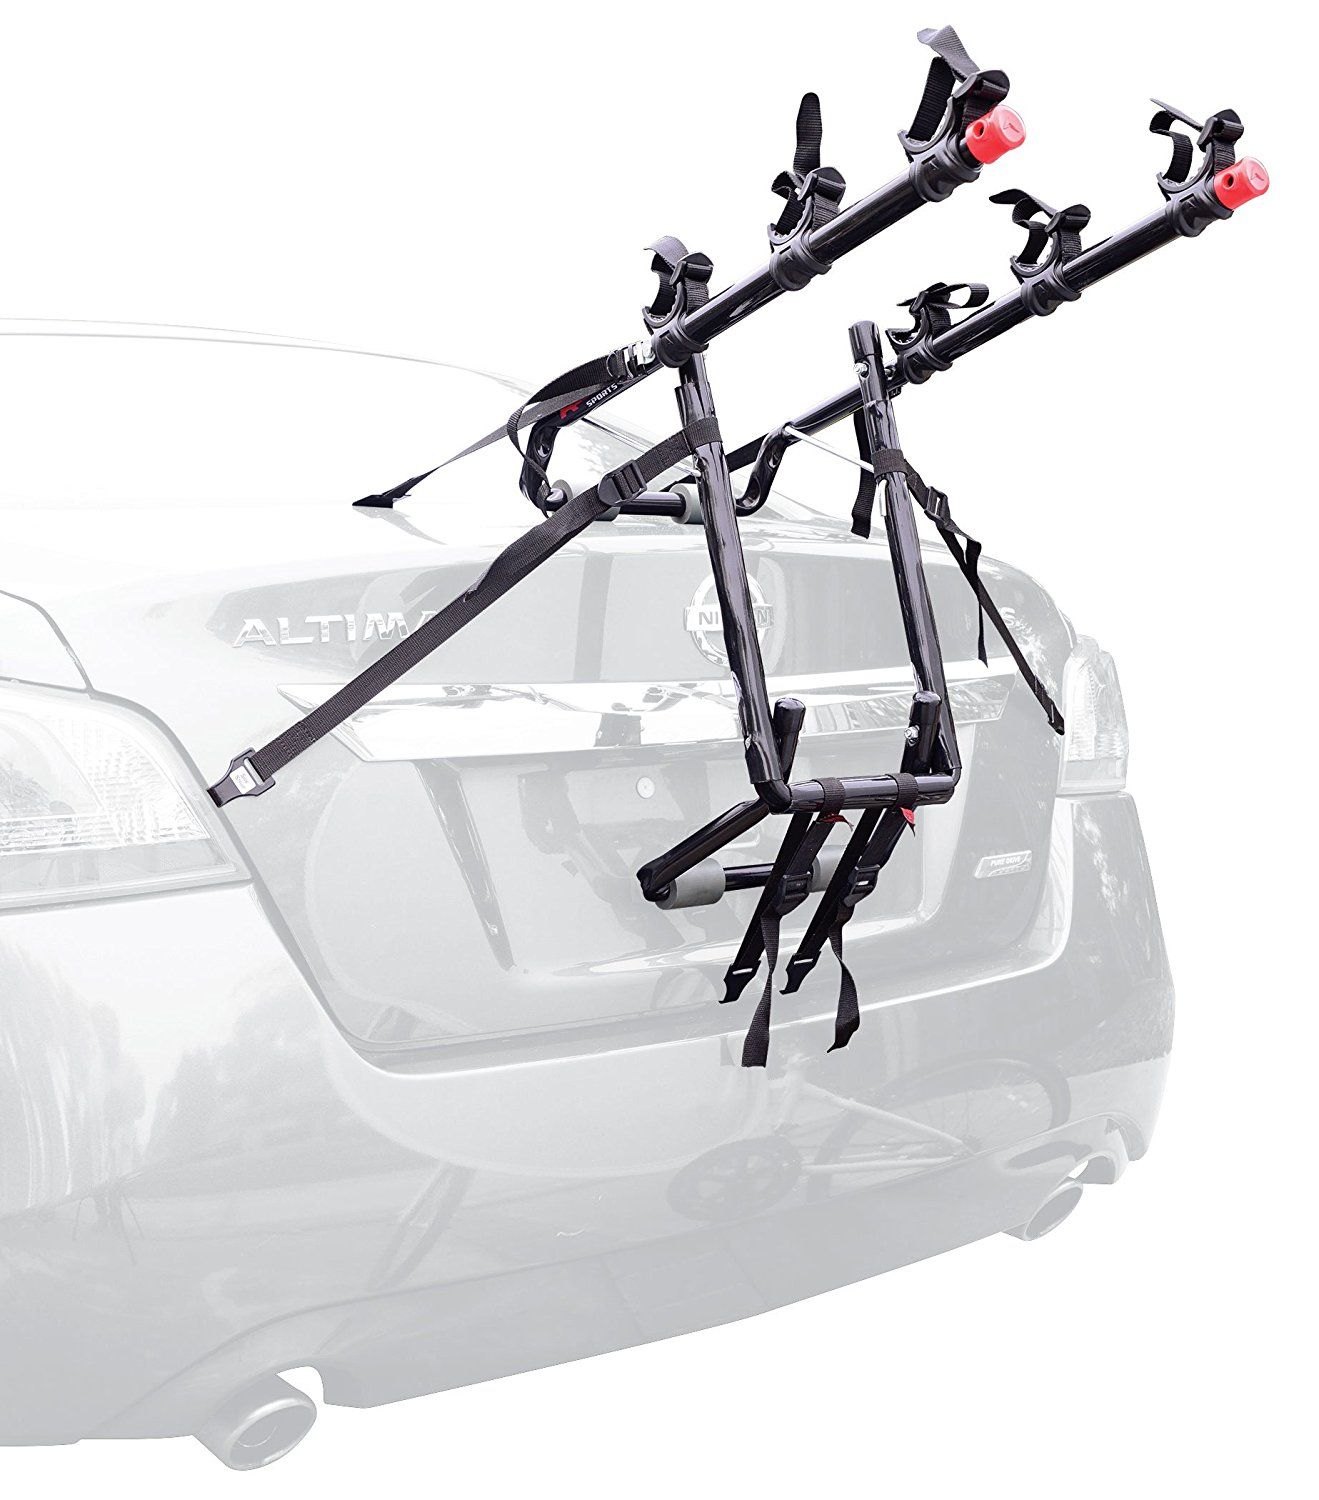 Top 10 Best Bike Racks Reviews With Images Trunk Mount Bike